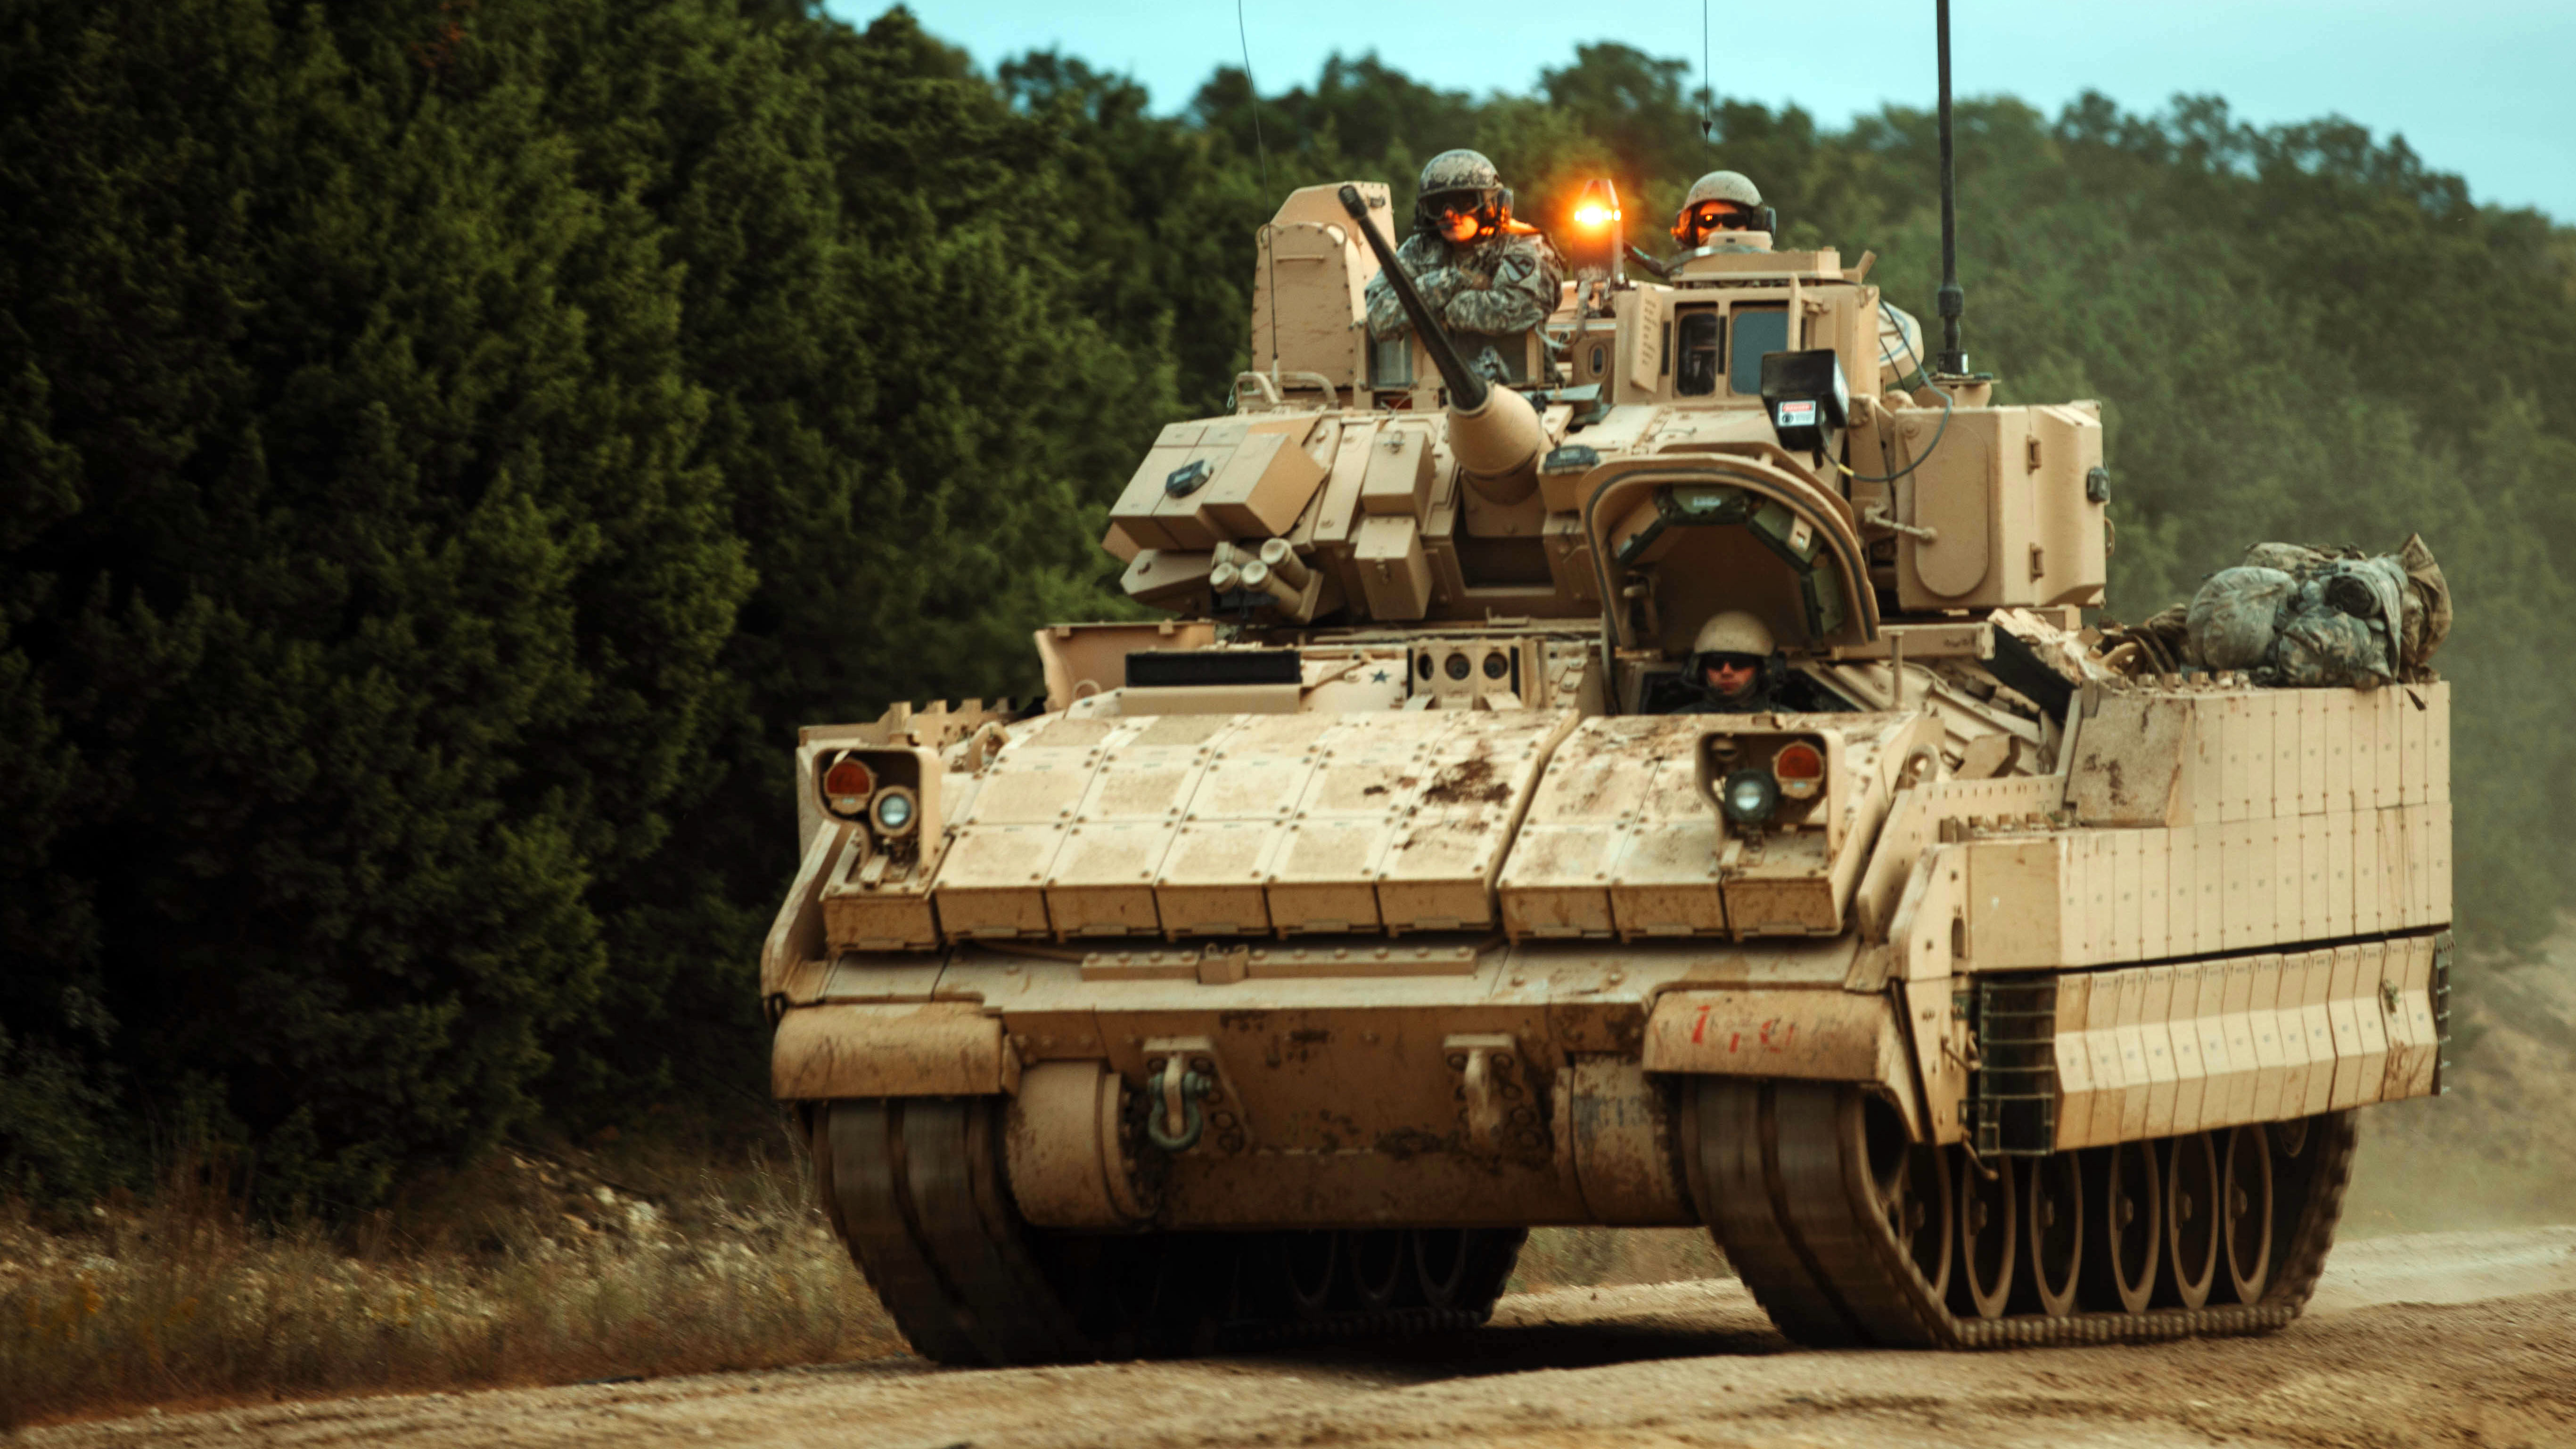 Bradley infantry fighting vehicle